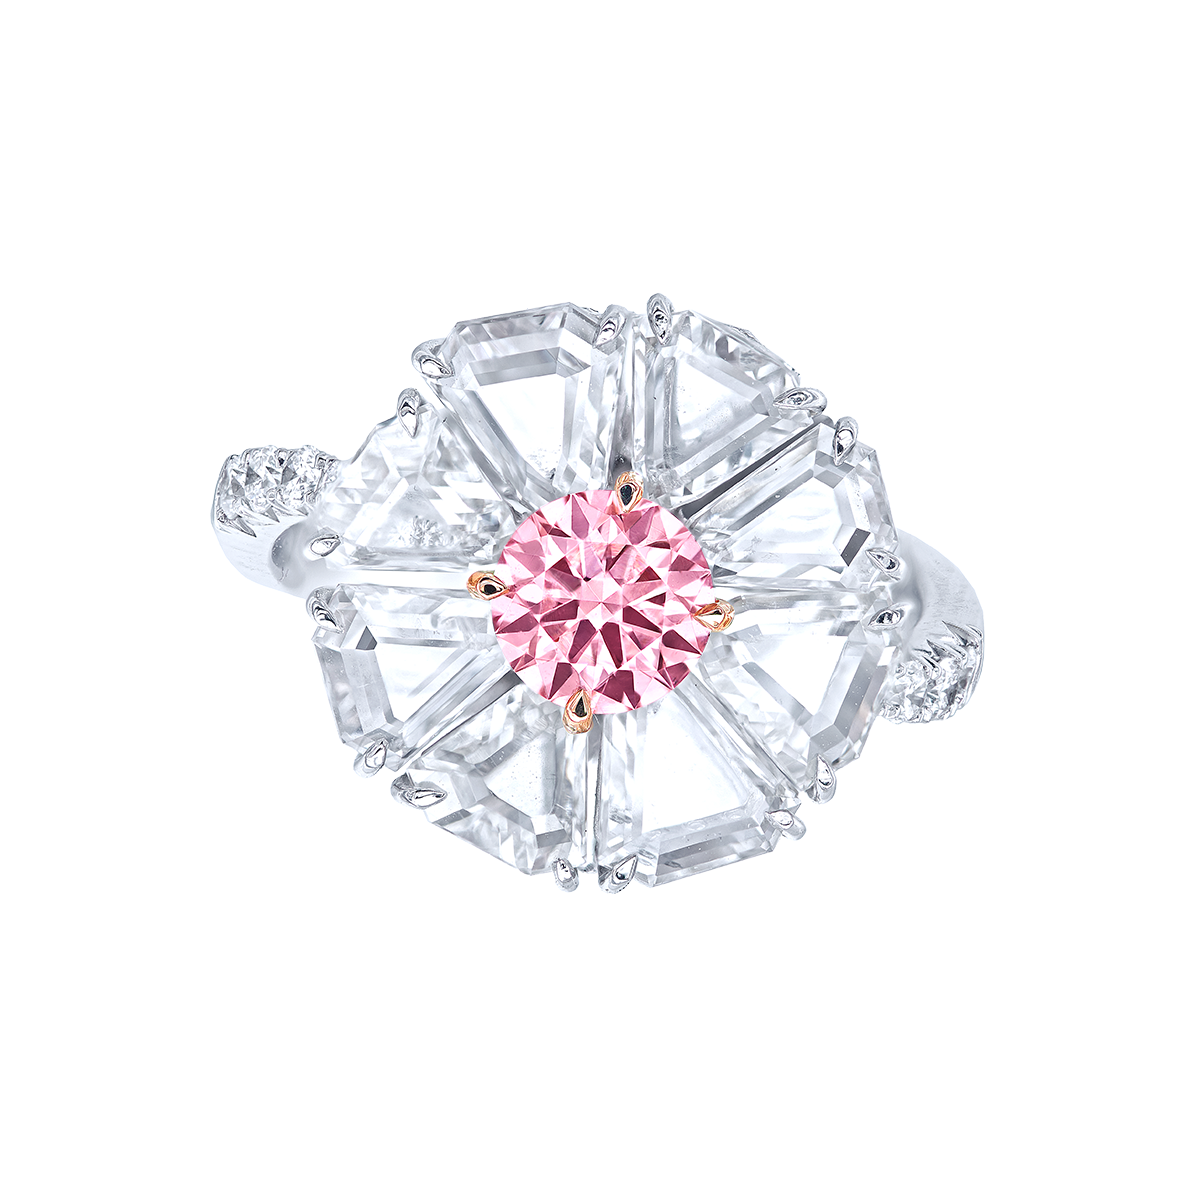 0.69克拉 阿蓋爾粉鑽鑽戒